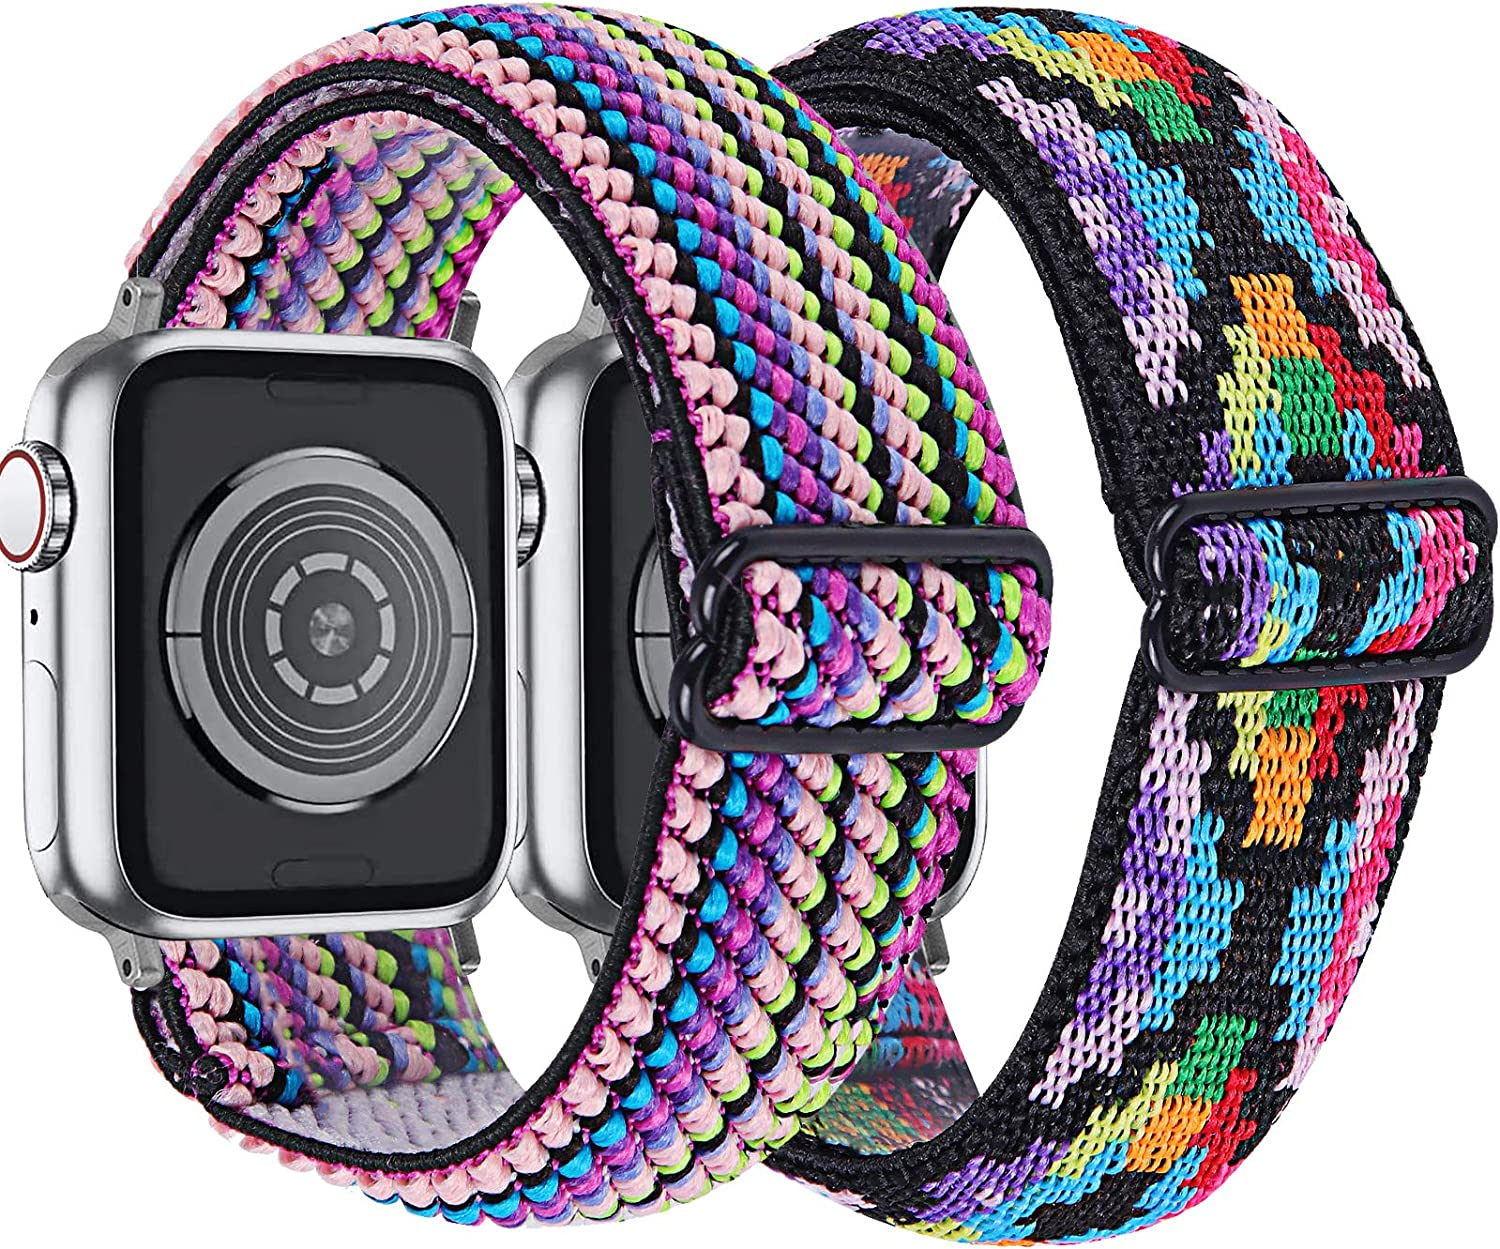 MEFEO 2-Pack Adjustable Elastic Apple Watch Bands Compatible with Apple Watch 38mm 40mm 42mm 44mm, Braided Pattern Nylon Sport Women Girls Bracelet Strap for iWatch SE Series 6/5/4/3/2/1 (Rainbow+Aztec Style Colorful, 38mm/40mm)